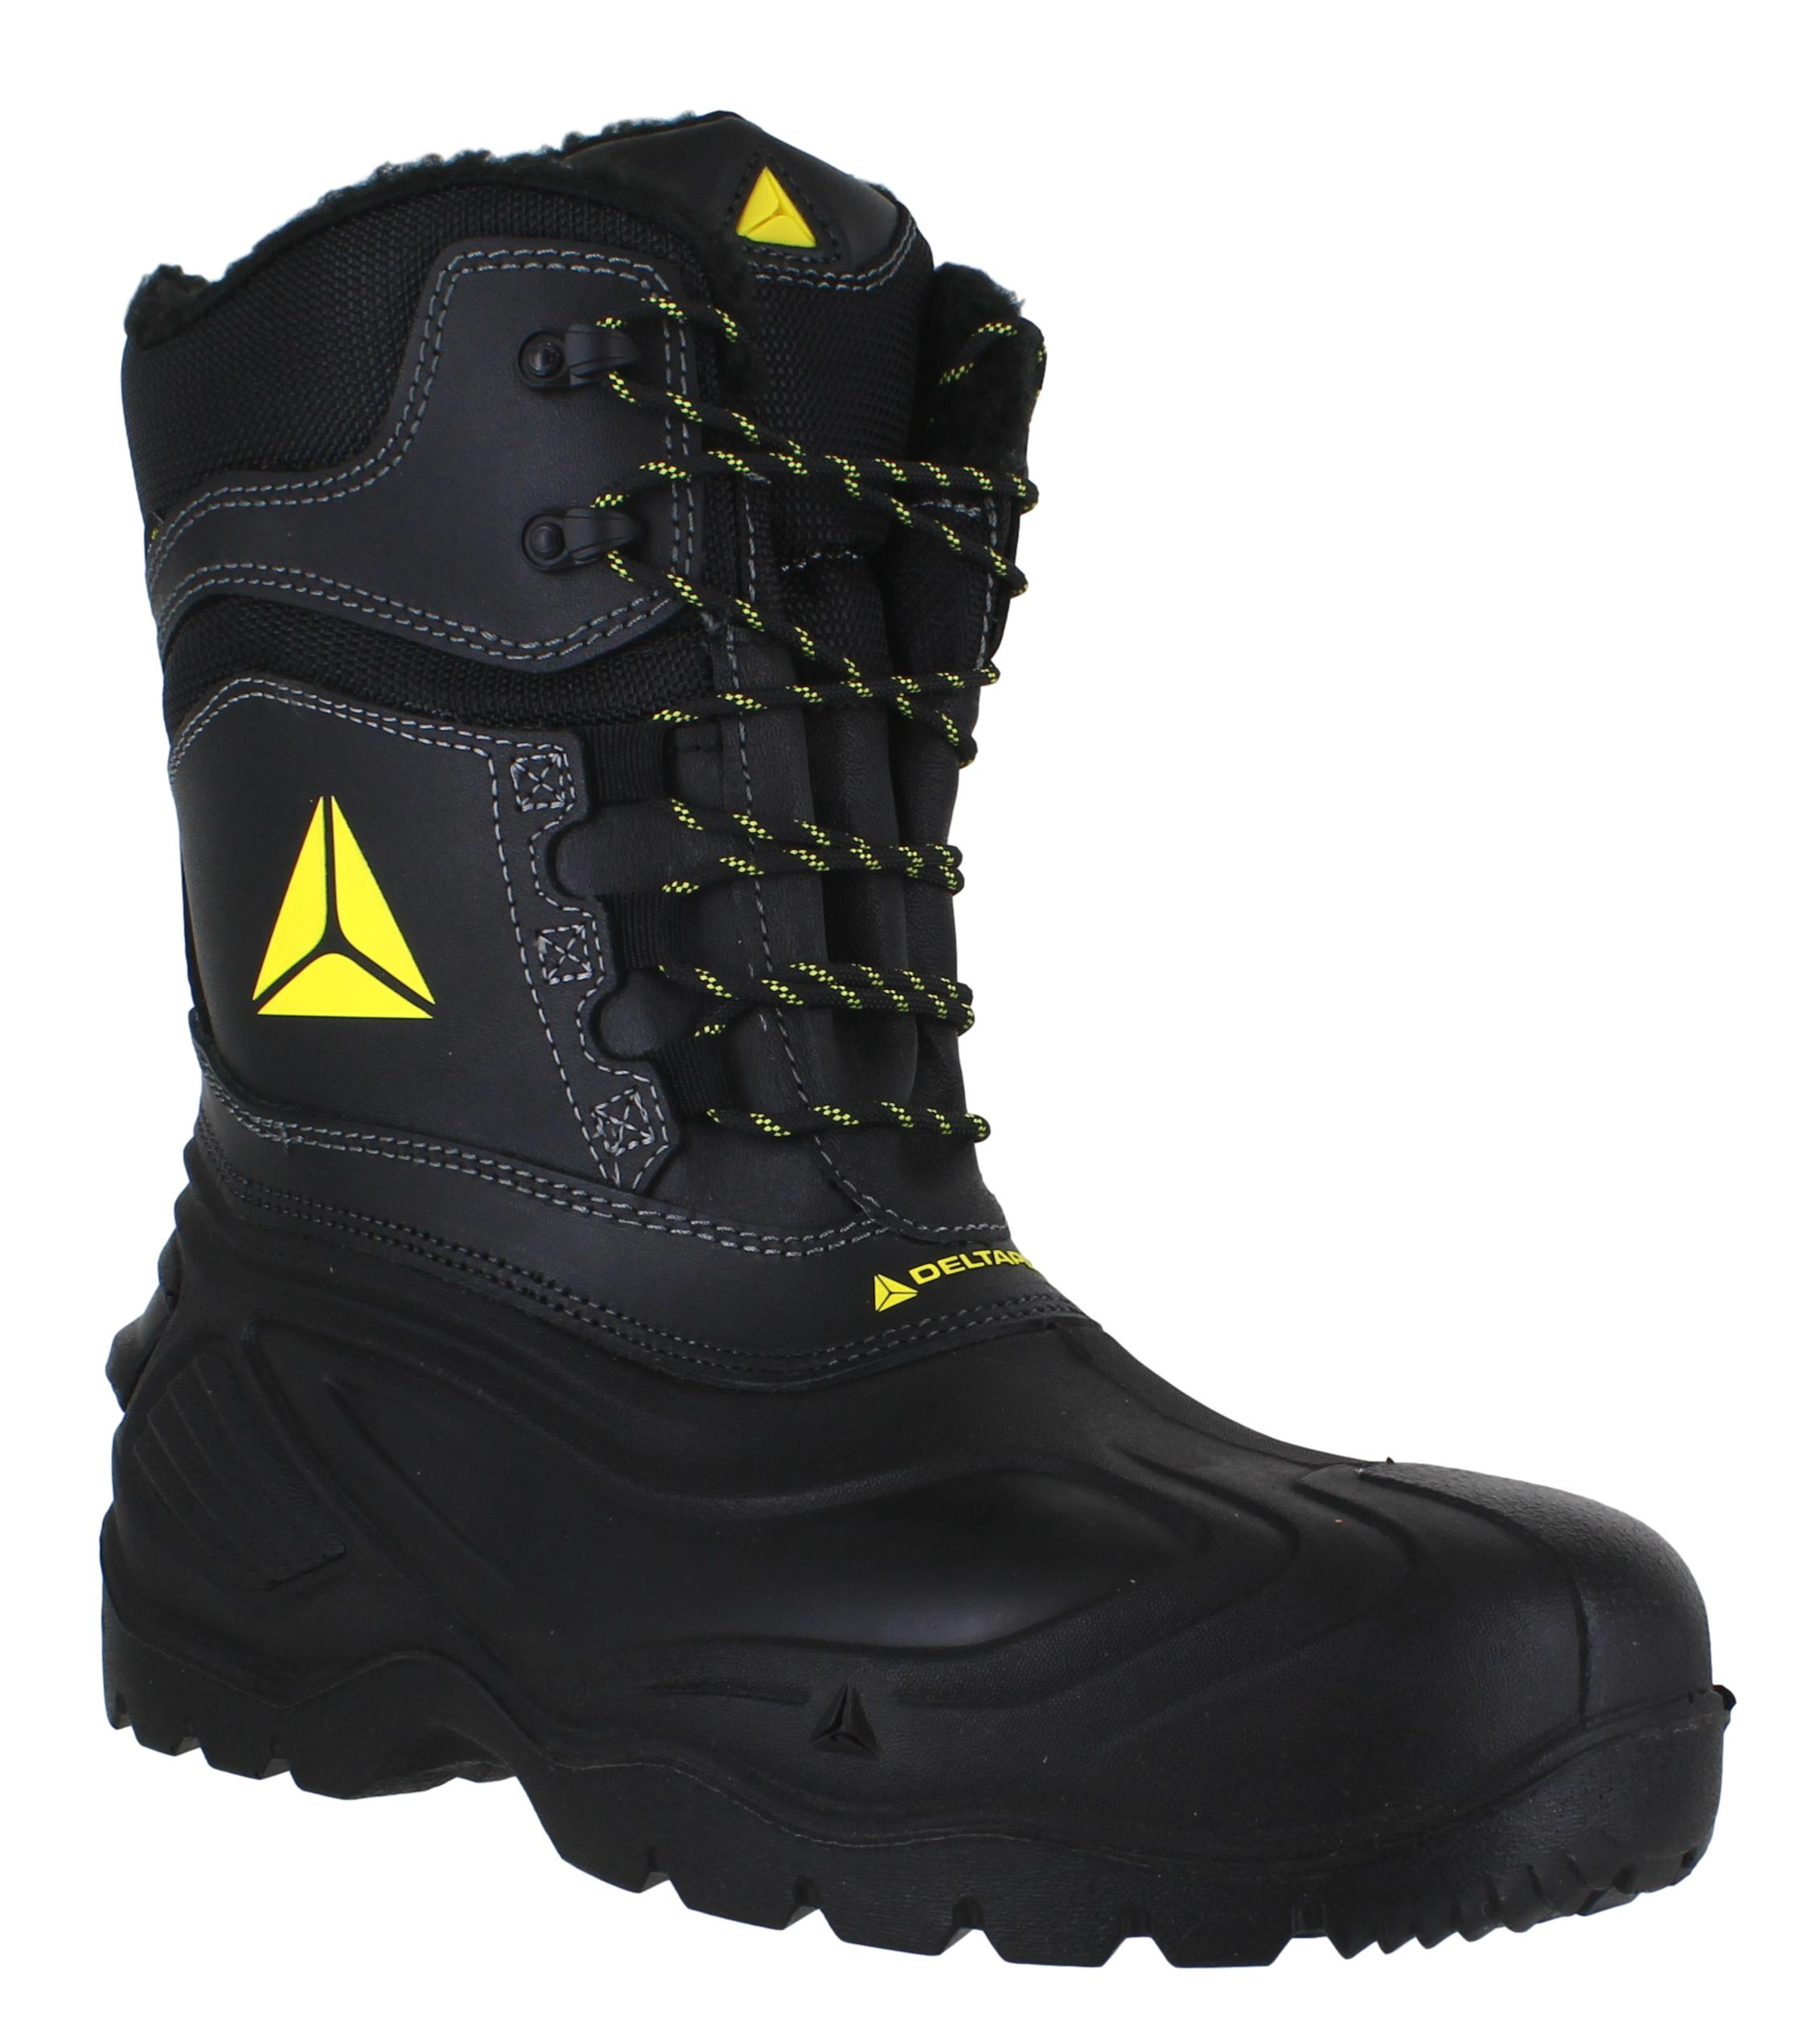 002b1f58679 Details about Mens Delta-Plus Waterproof Tall Safety Composite Toe/Midsole  Boots Sizes 7 to 12